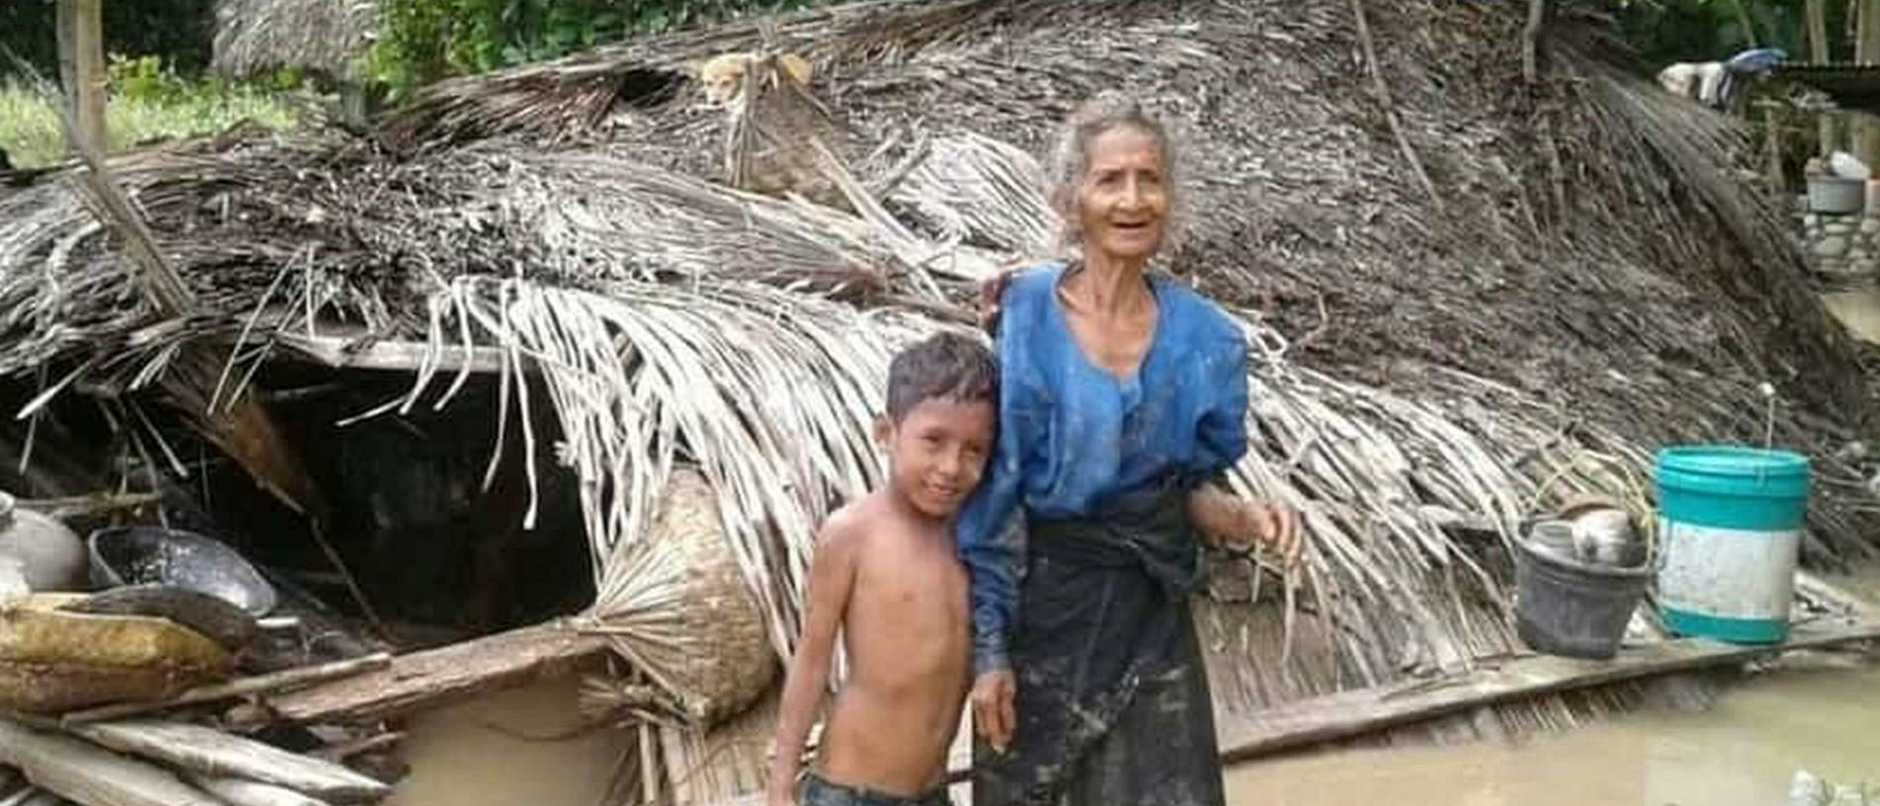 A GoFundMe page started by a Timorese Australian has already raised almost $10000 to support flood victims in Dili.